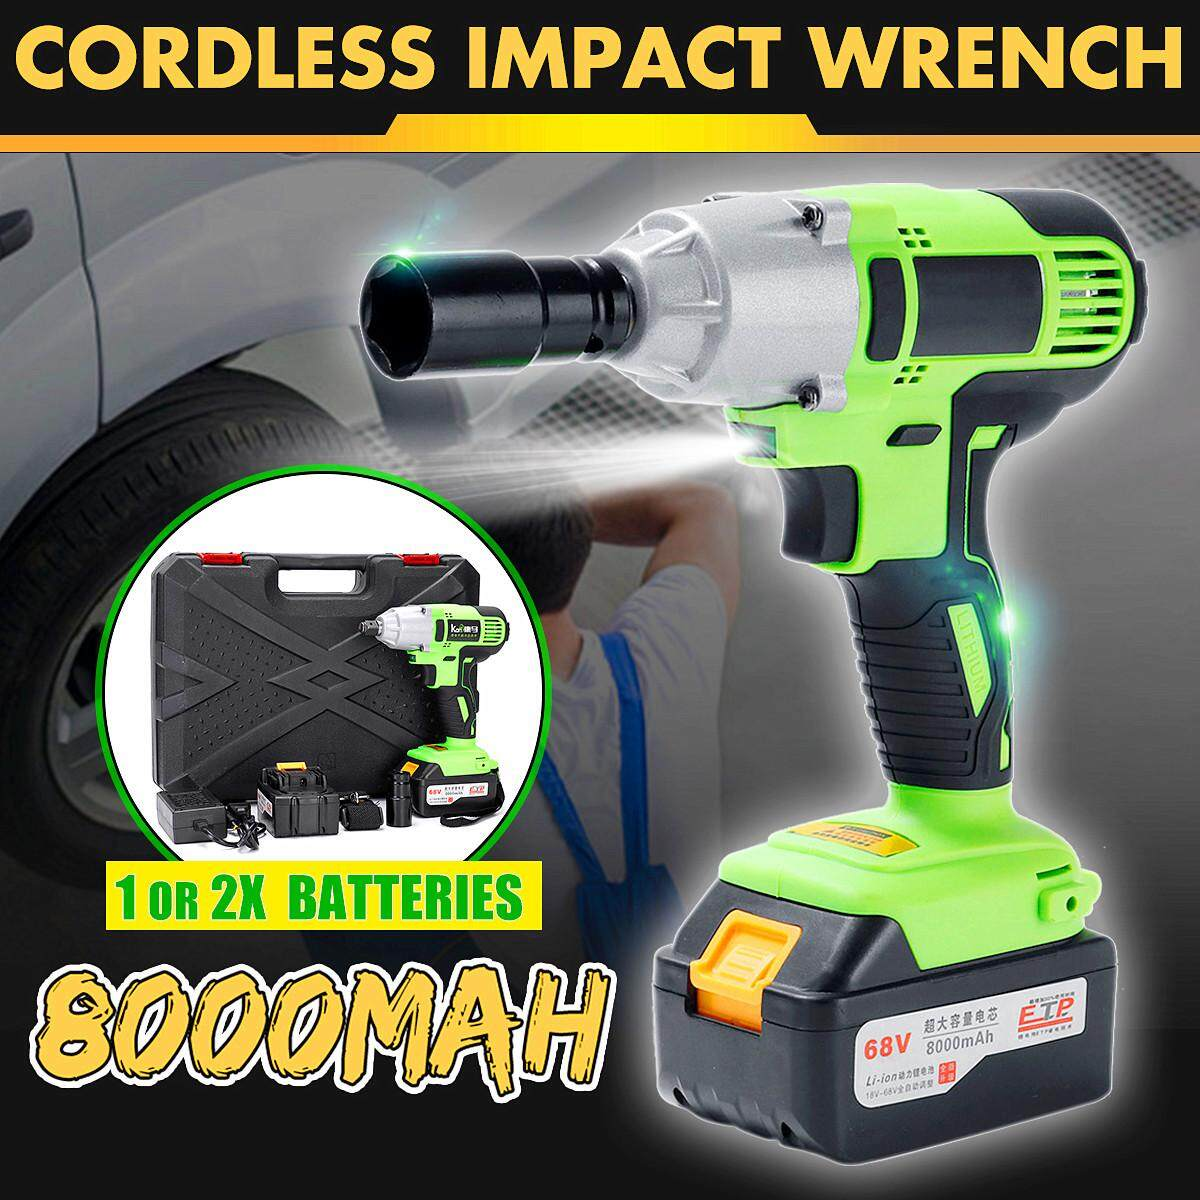 68v Cordless Screwdriver Lithium-Ion Electric Impact Wrench Brushless Motor